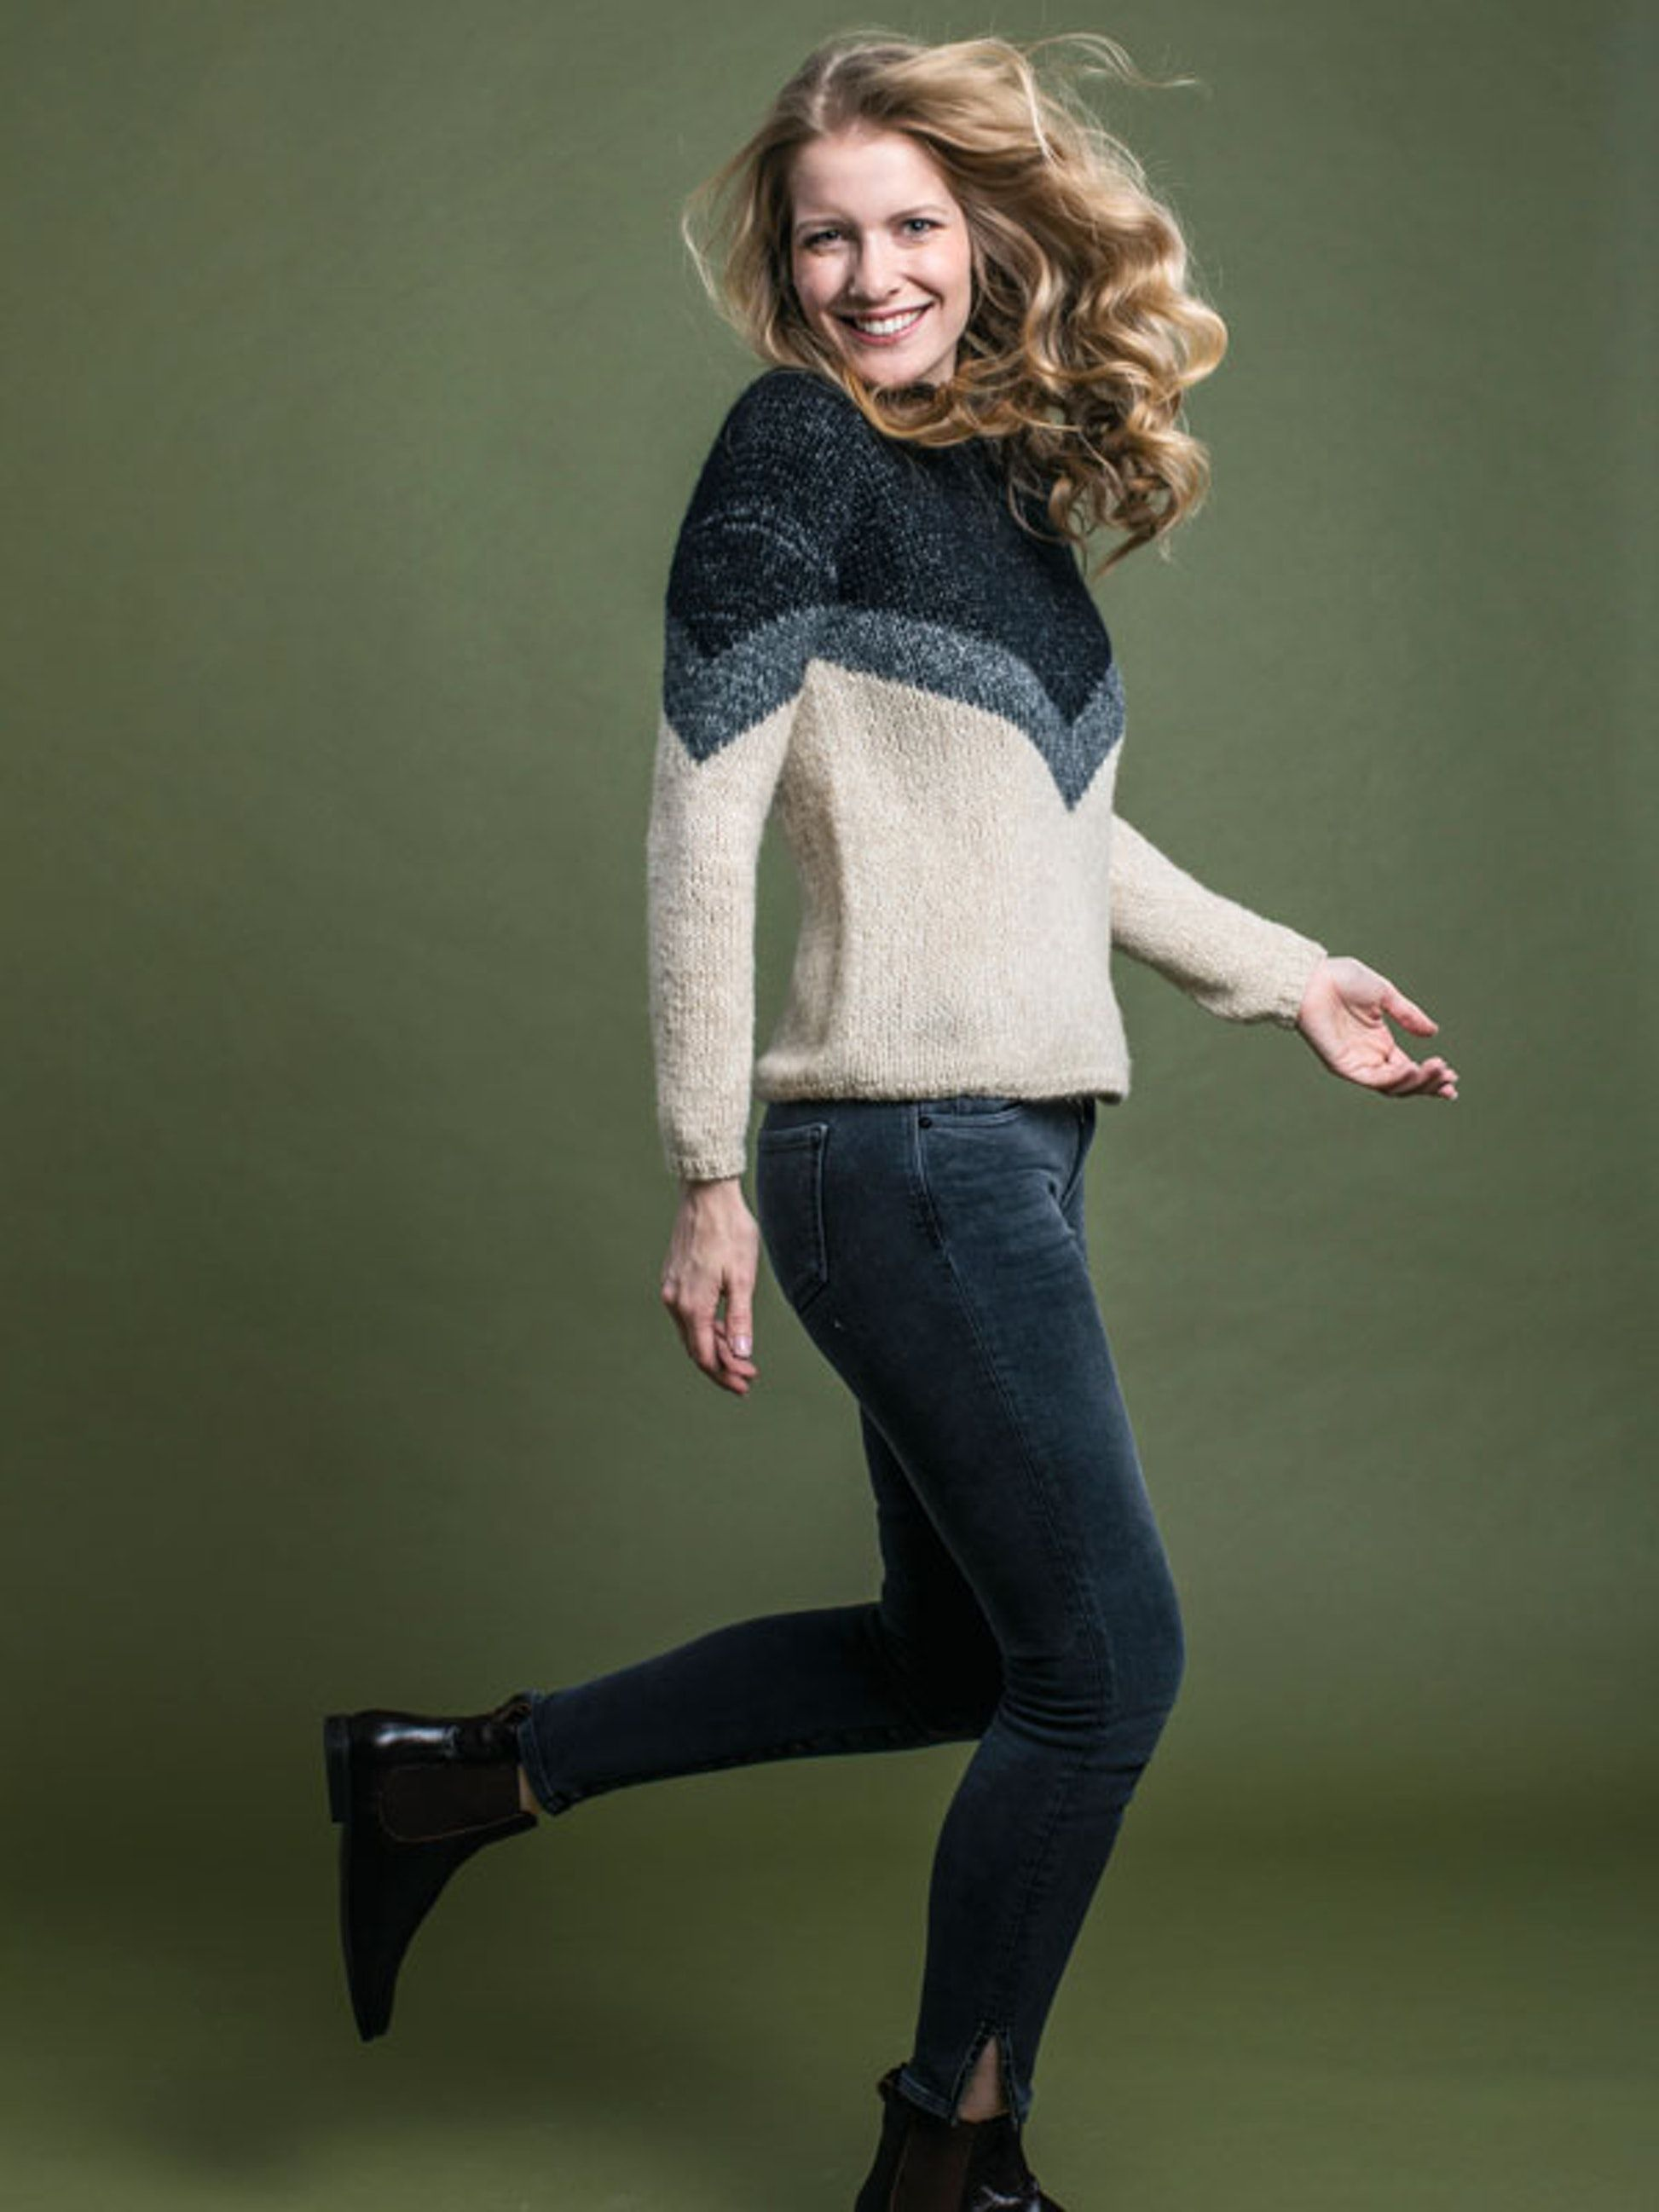 Strikkeopskrift: Sweater i gobelinstrik | Familie Journal #strikkeopskriftsweater